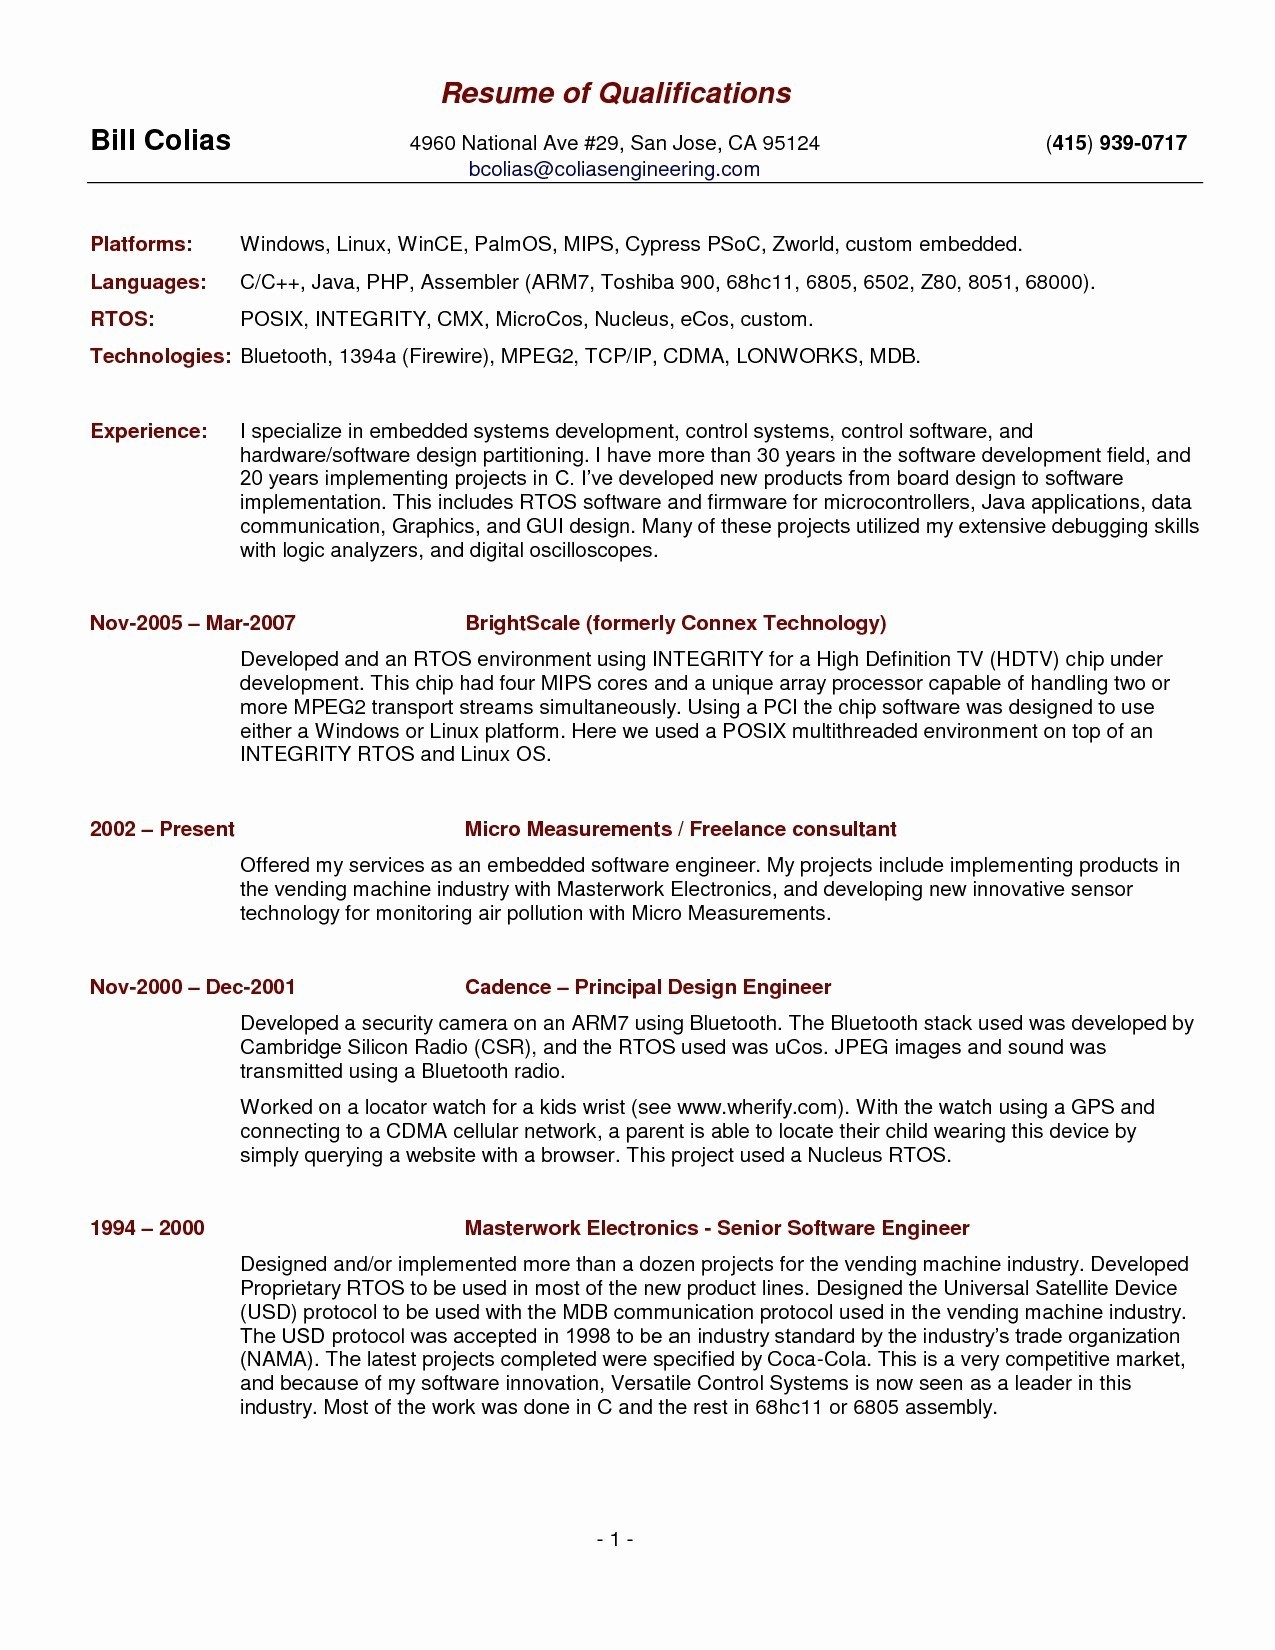 Nursing Resume Cover Letter Template Free - Resumes for Free Unique Elegant Pr Resume Template Elegant